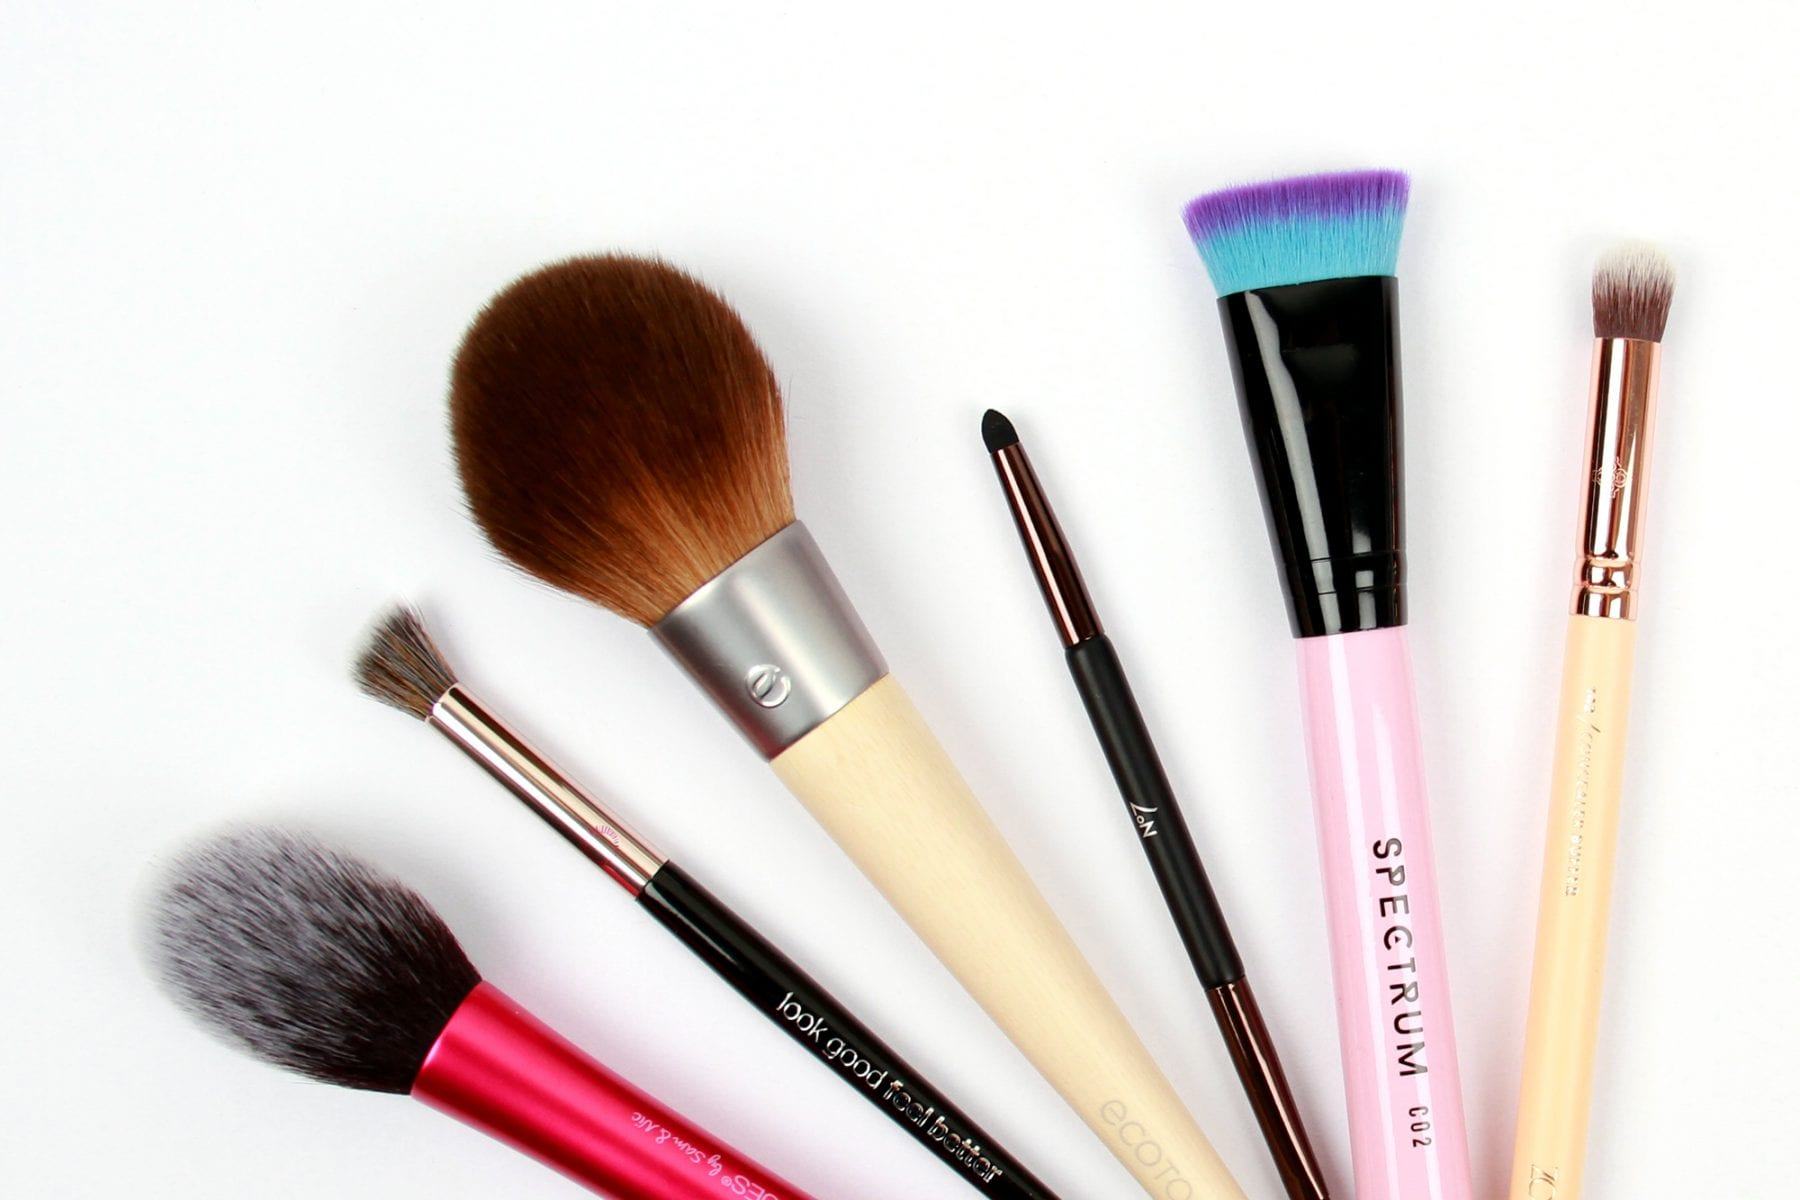 How To Clean Makeup Brushes And What Products To Use